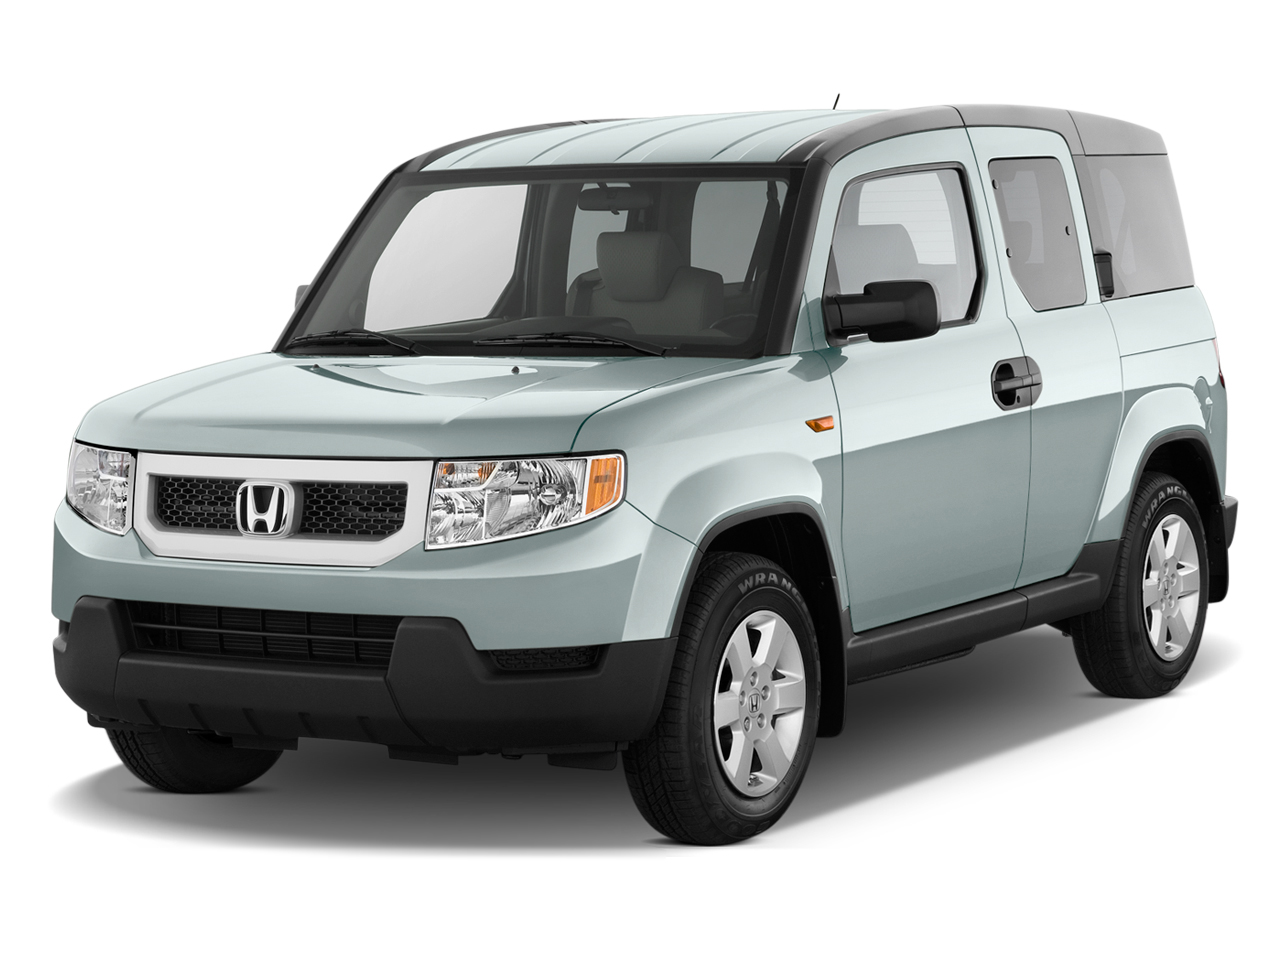 New And Used Honda Element: Prices, Photos, Reviews, Specs